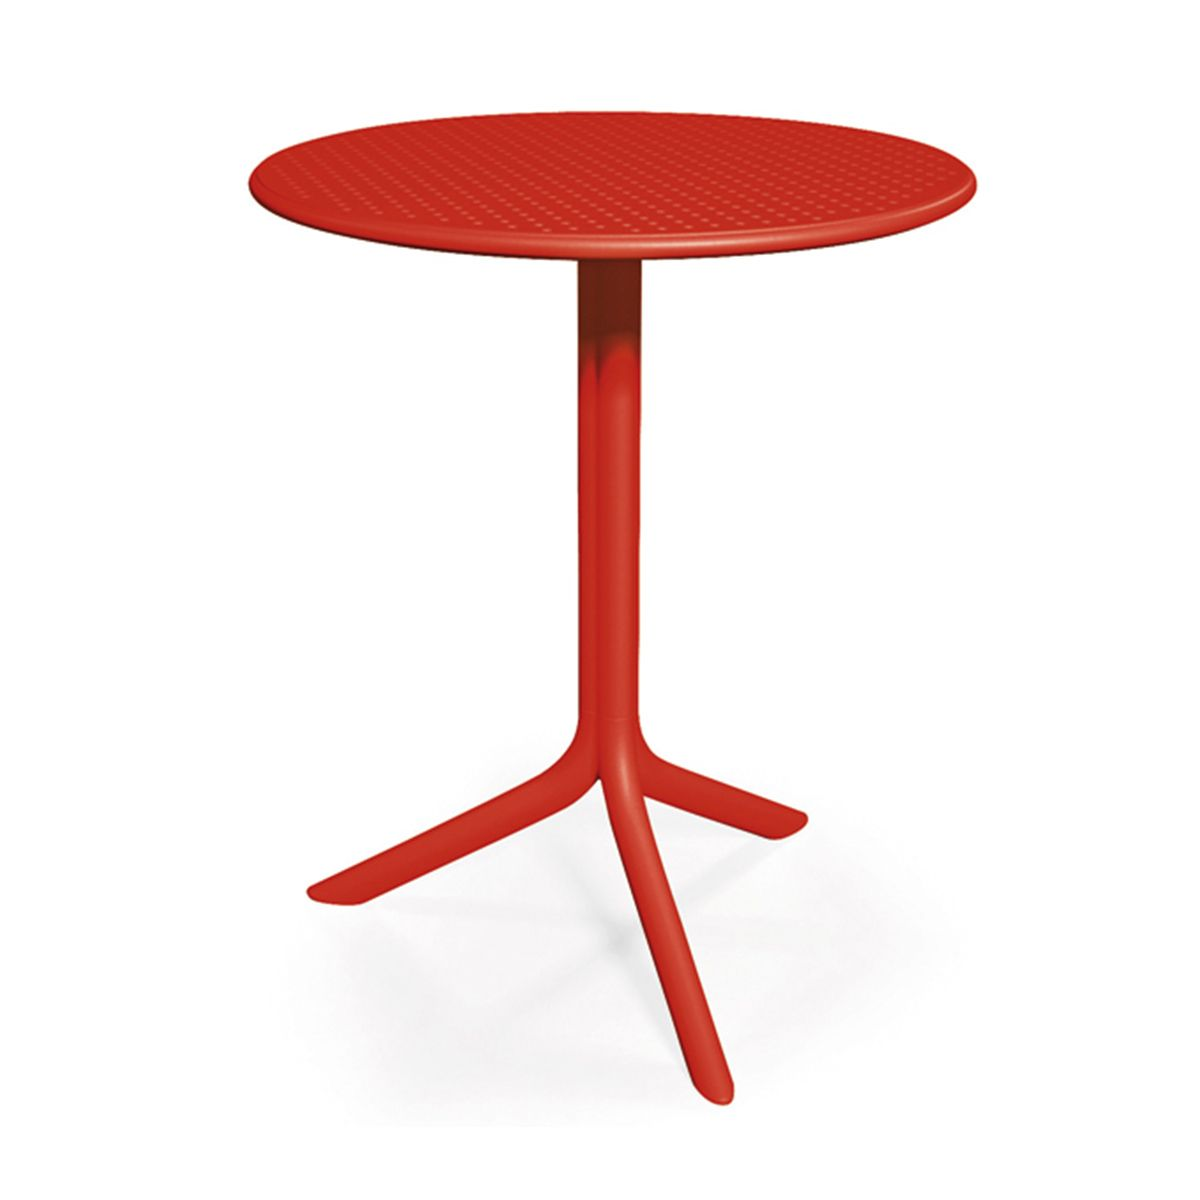 Table jardin ronde design nardi step 60 cm zendart design - Table de jardin design ...